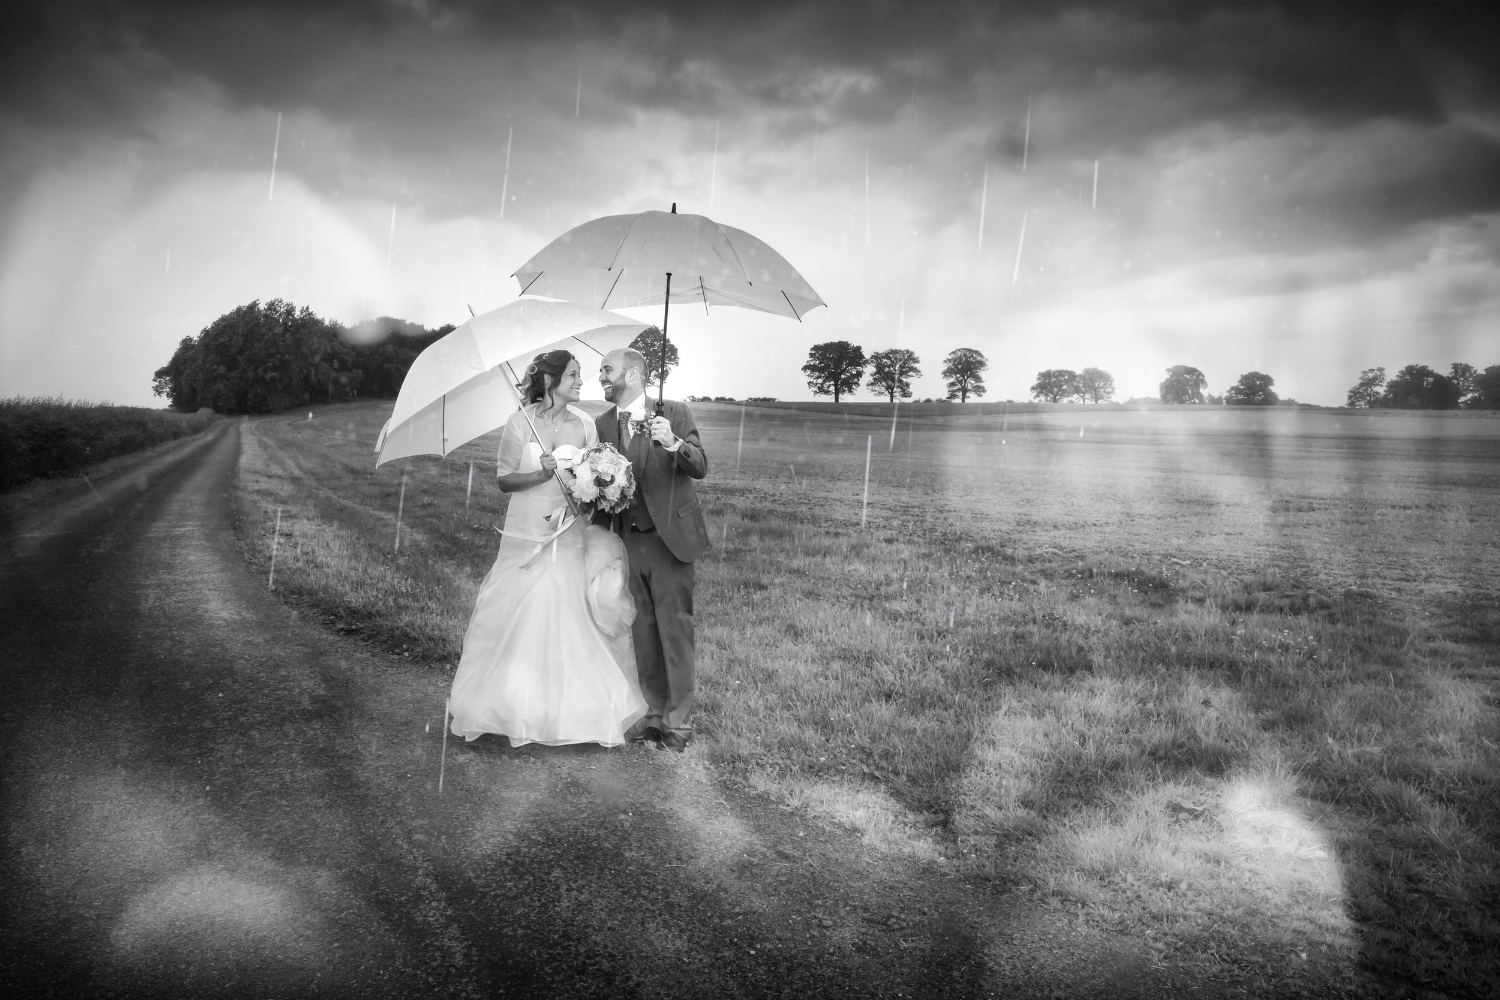 Wayne Hudson Photography, Lucria Creative, Cornwall and Devon wedding photographer based in Launceston, Rain on your wedding day